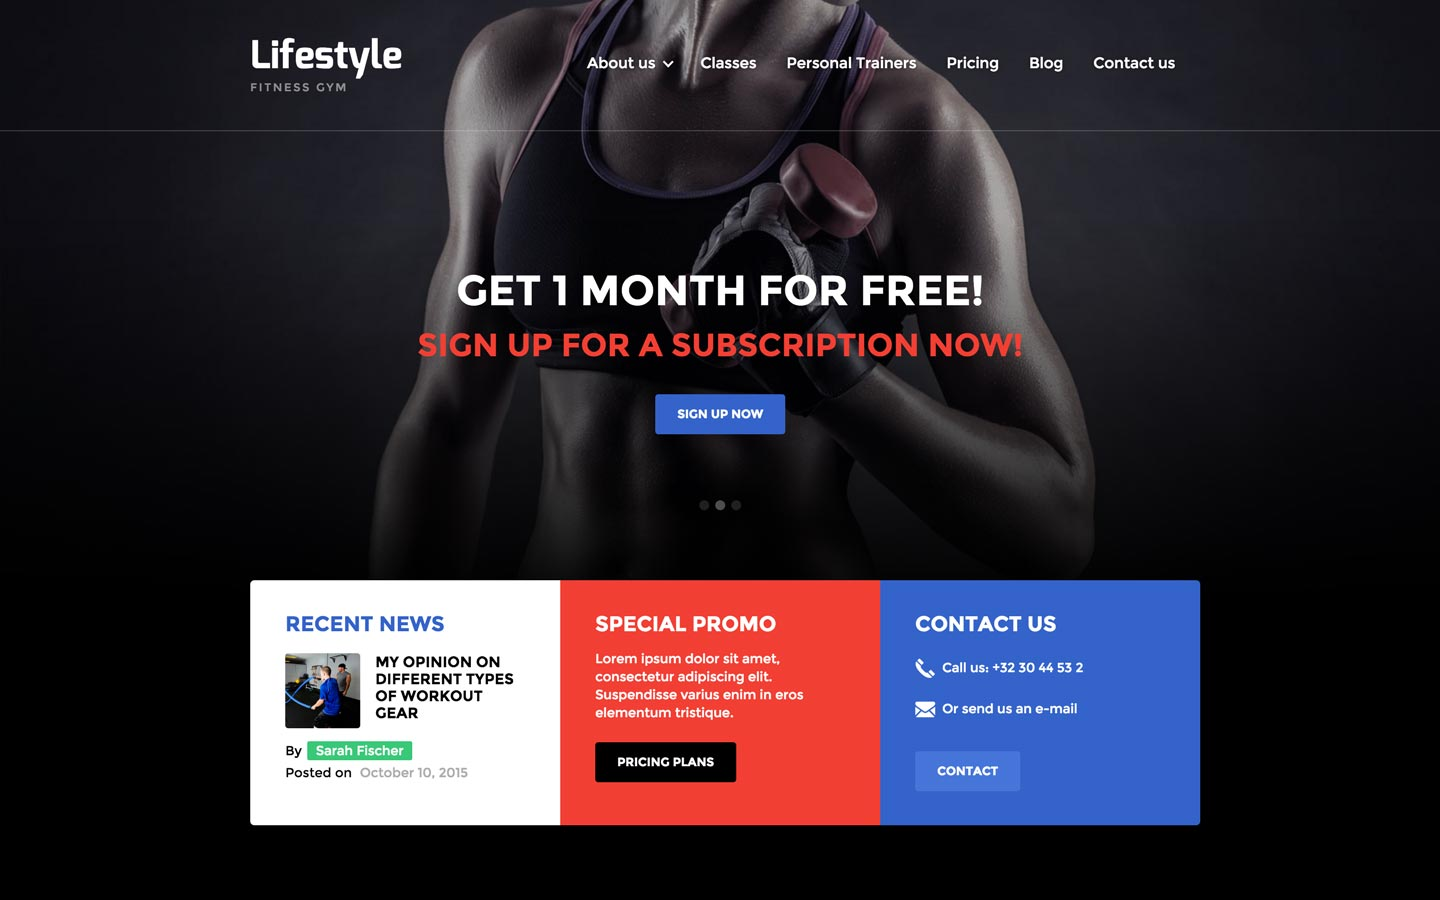 Lifestyle – Gym Website Template